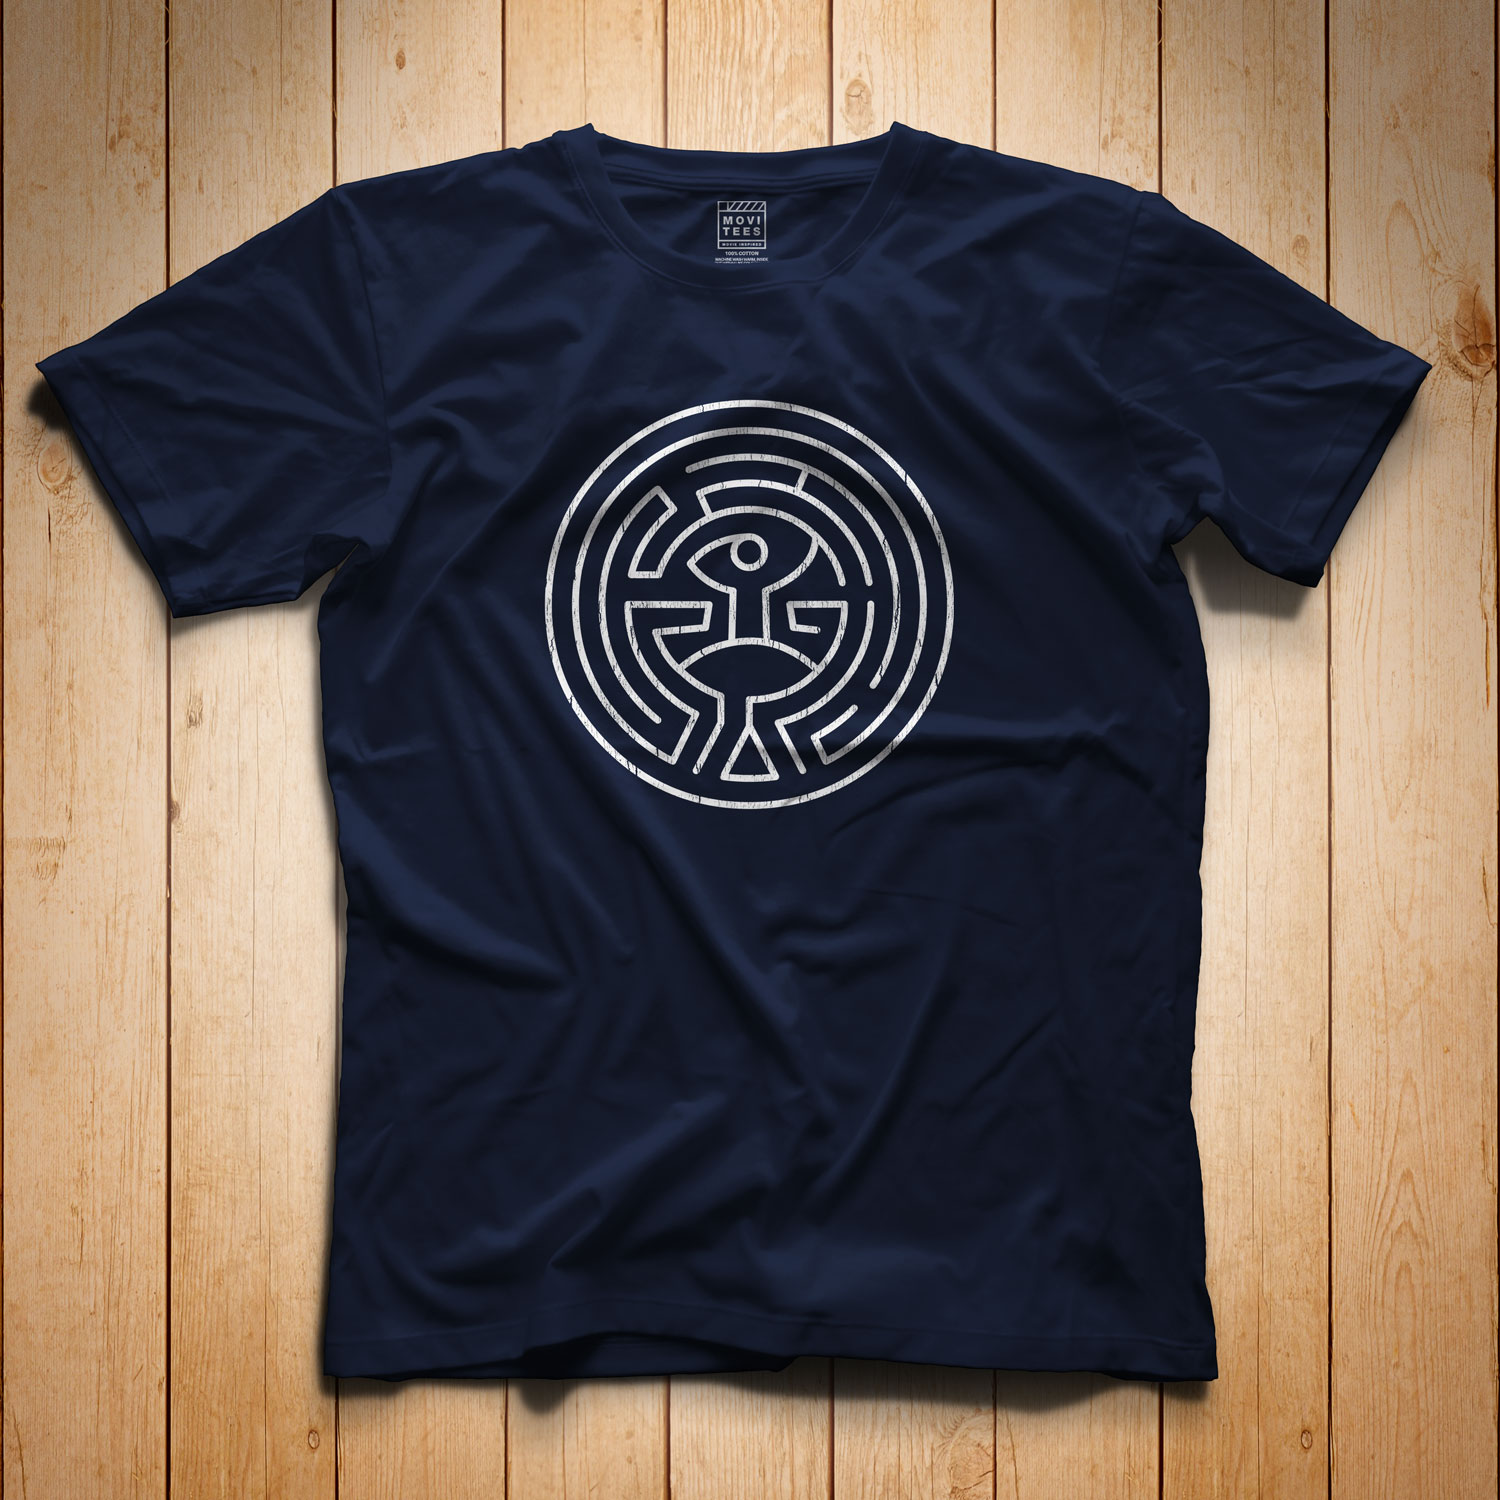 Westworld-Maze-Westworld-Inspired-TShirt-by-MoviTees_N.jpg